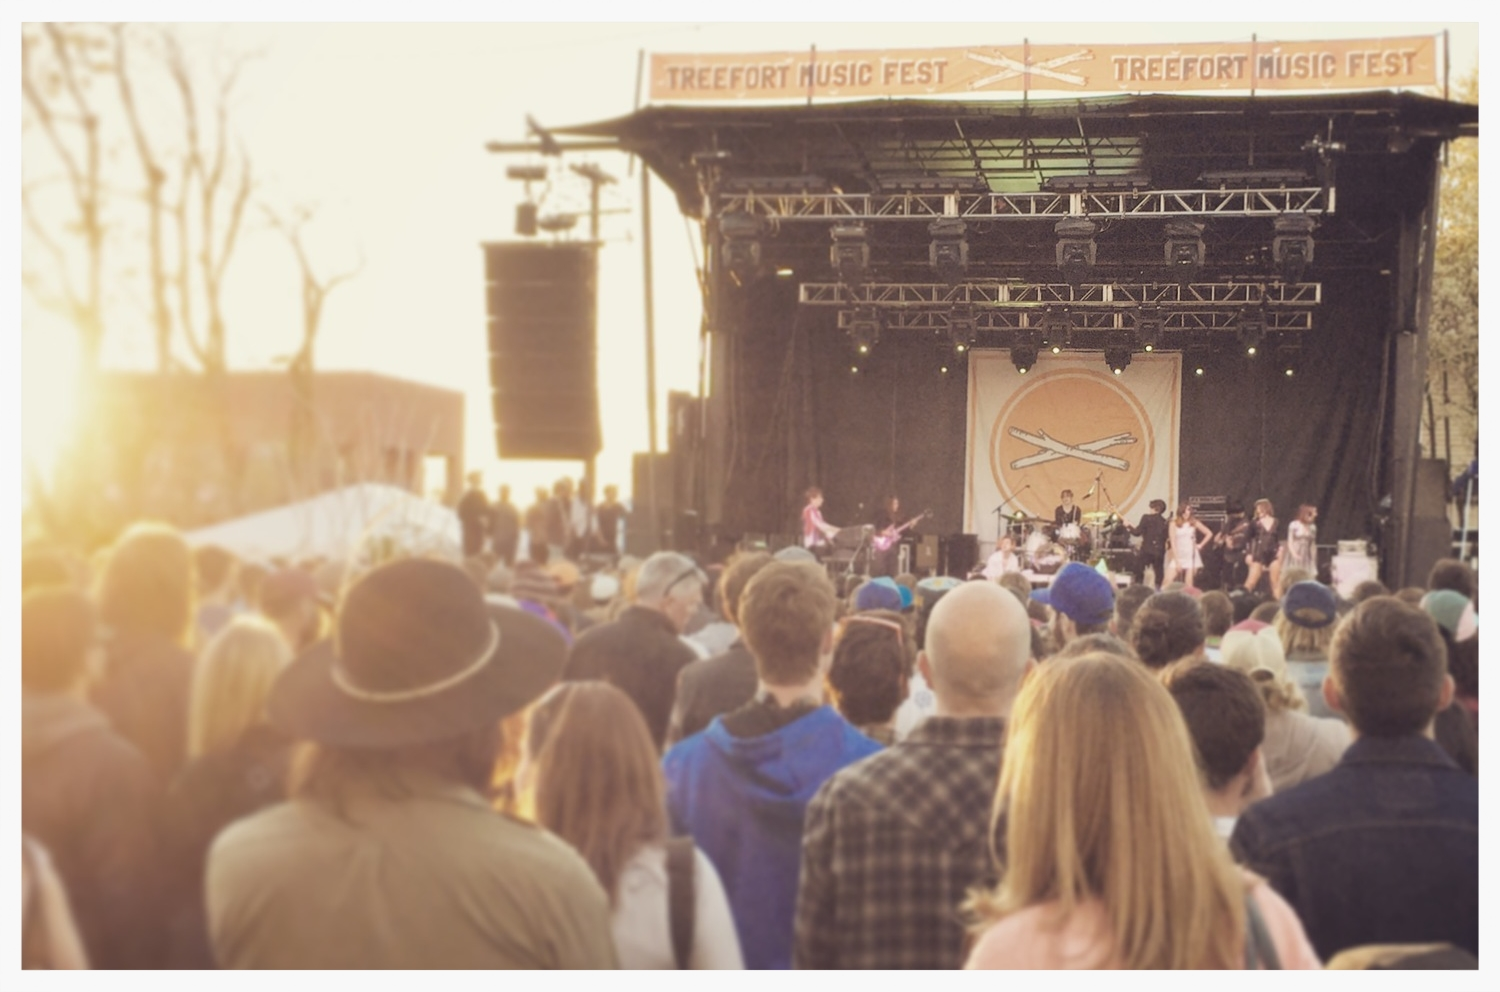 Foxygen playing the main stage at sunset.